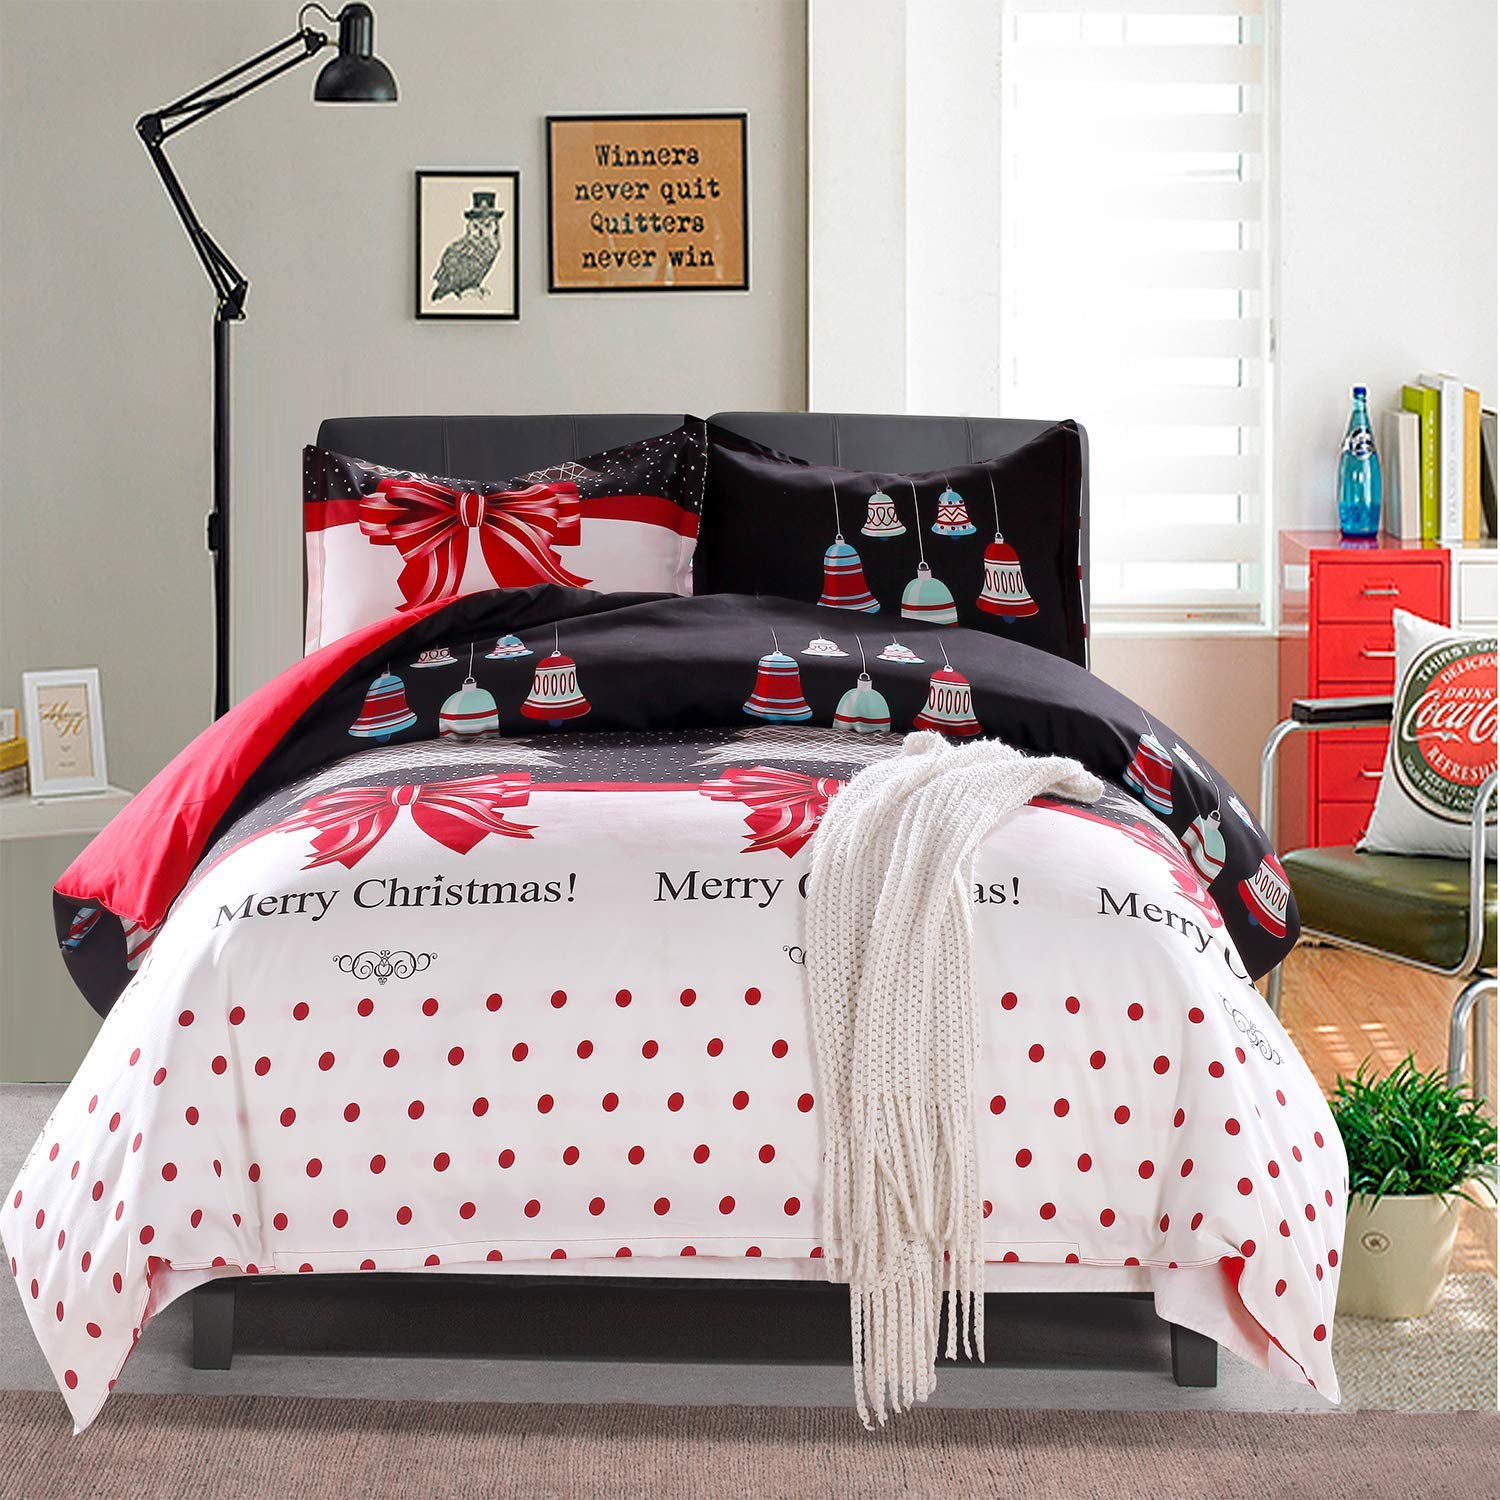 Lamejor Christmas Duvet Cover Set - Buy Christmas Duvet Covers